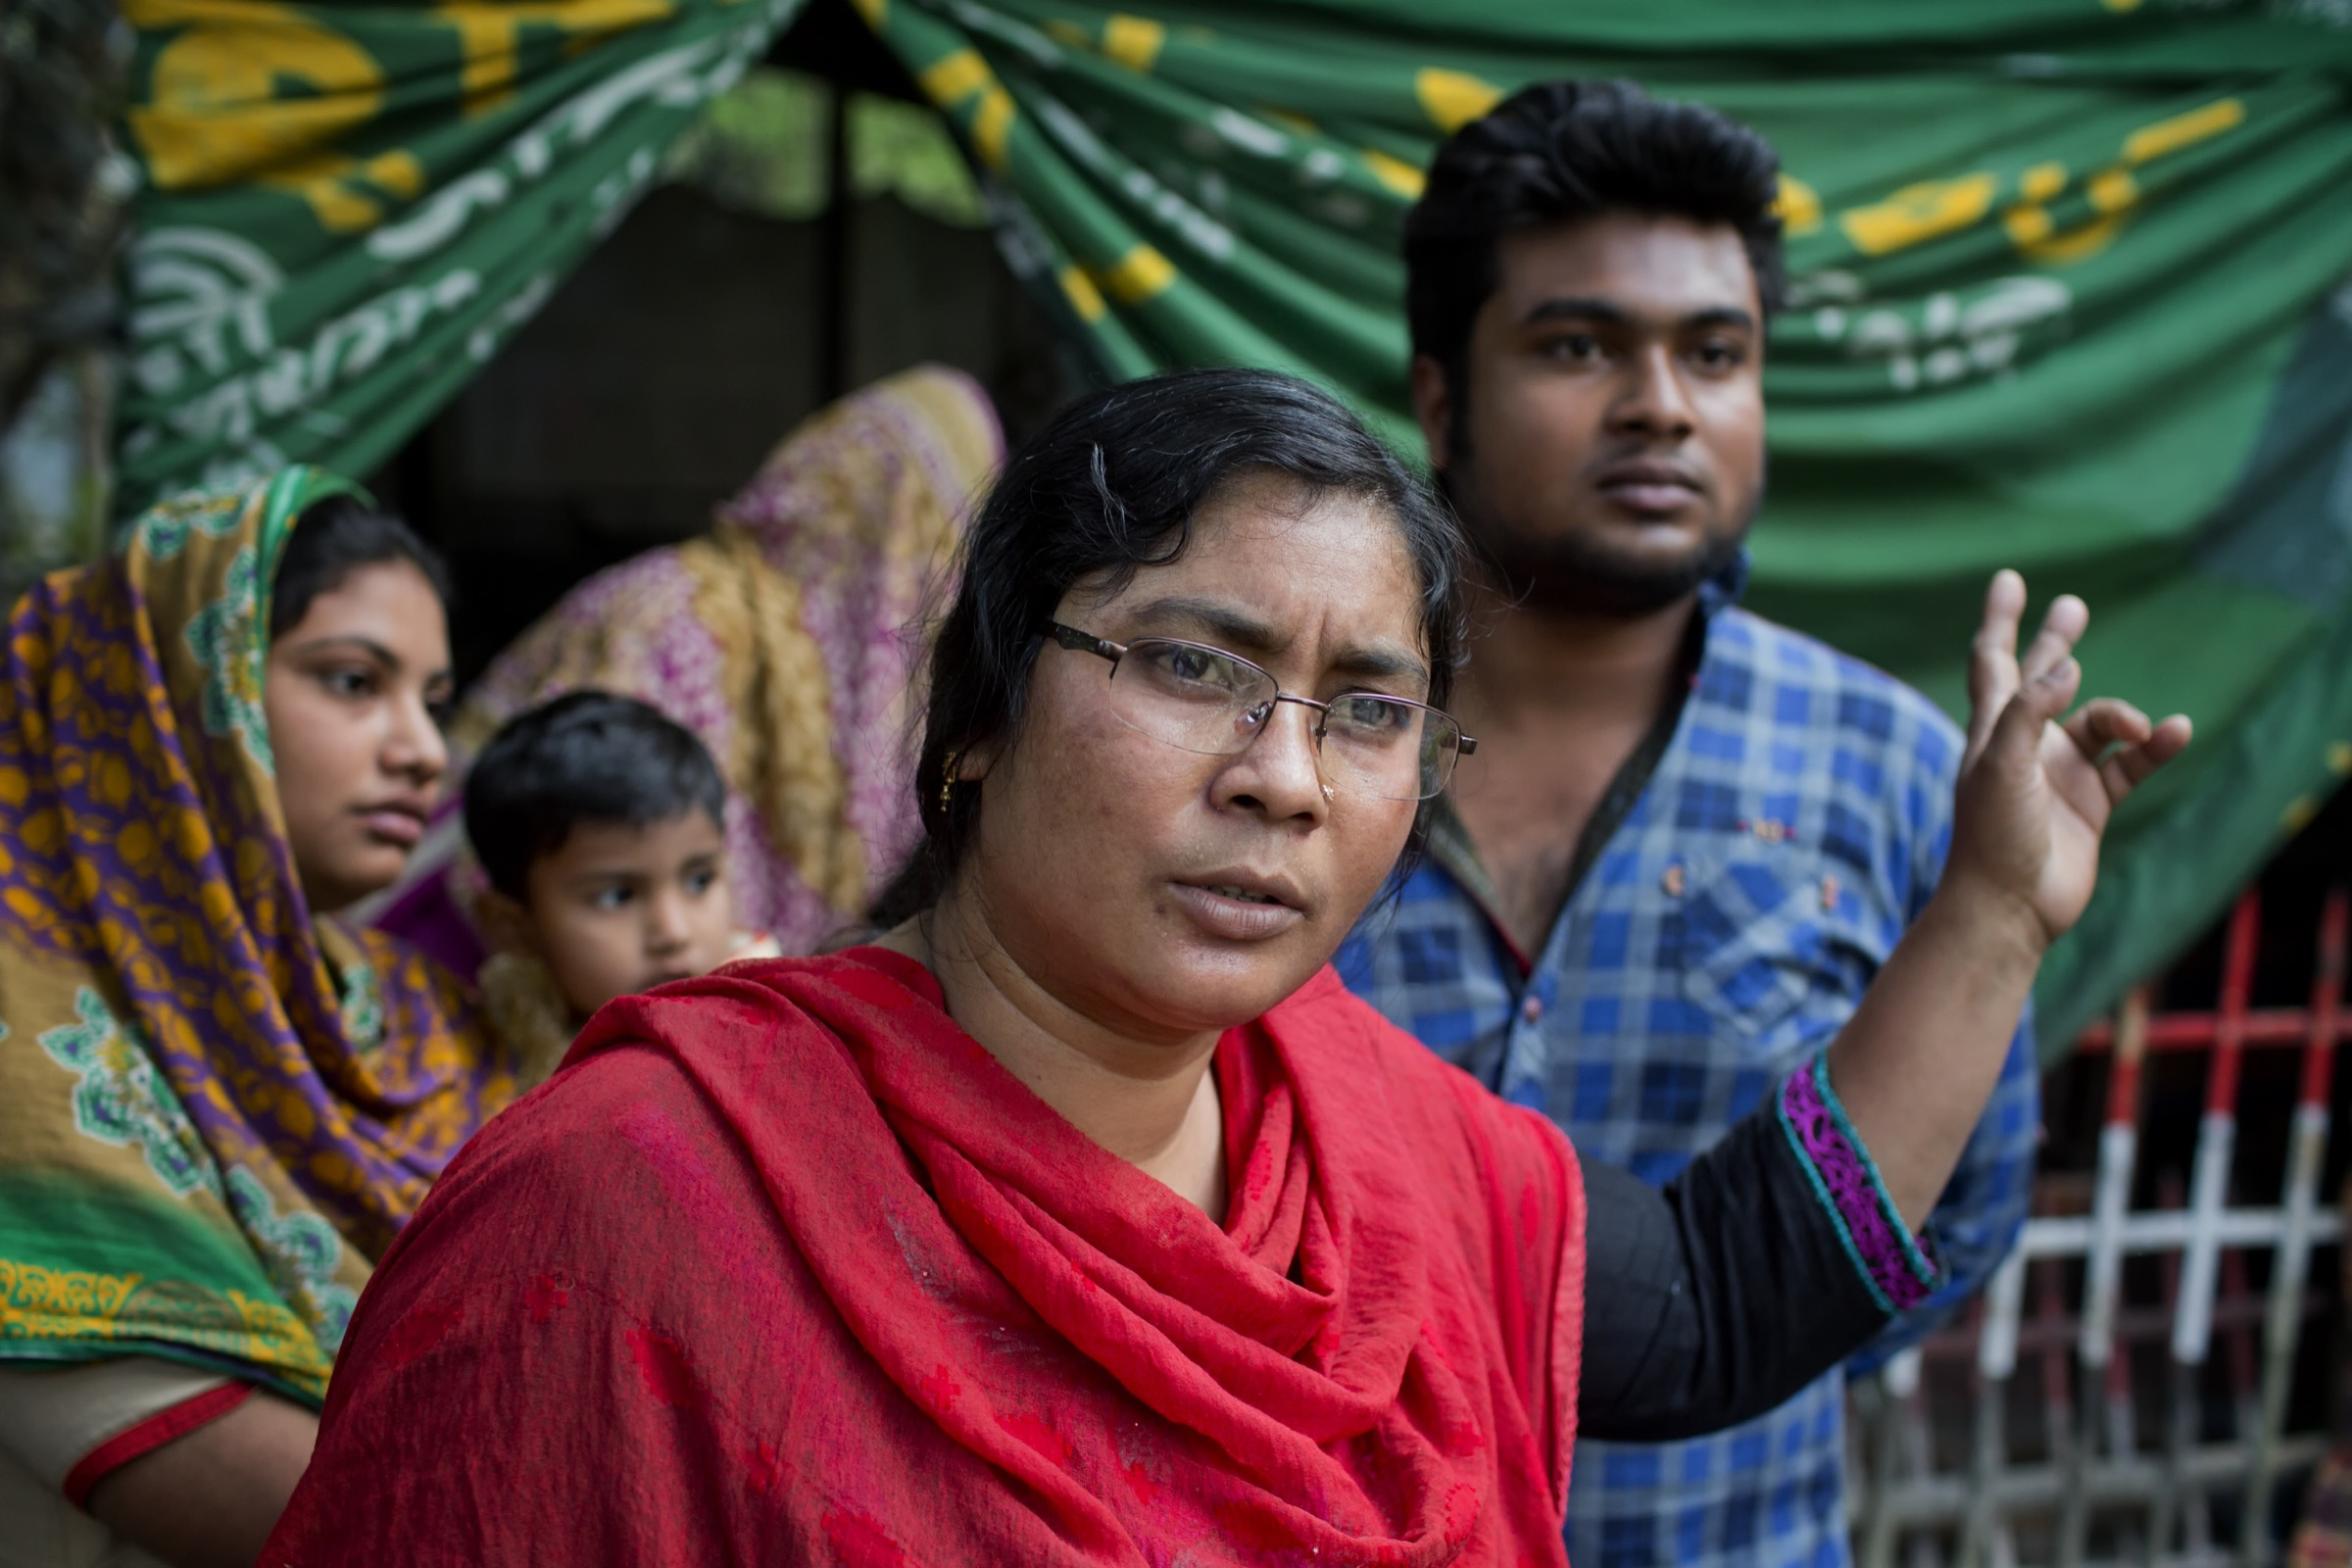 A woman discusses the 2011 Nipah outbreak in Faridpur that took seven members of her family. She and her son (in blue) were also infected but survived. Photograph by A.M. Ahad